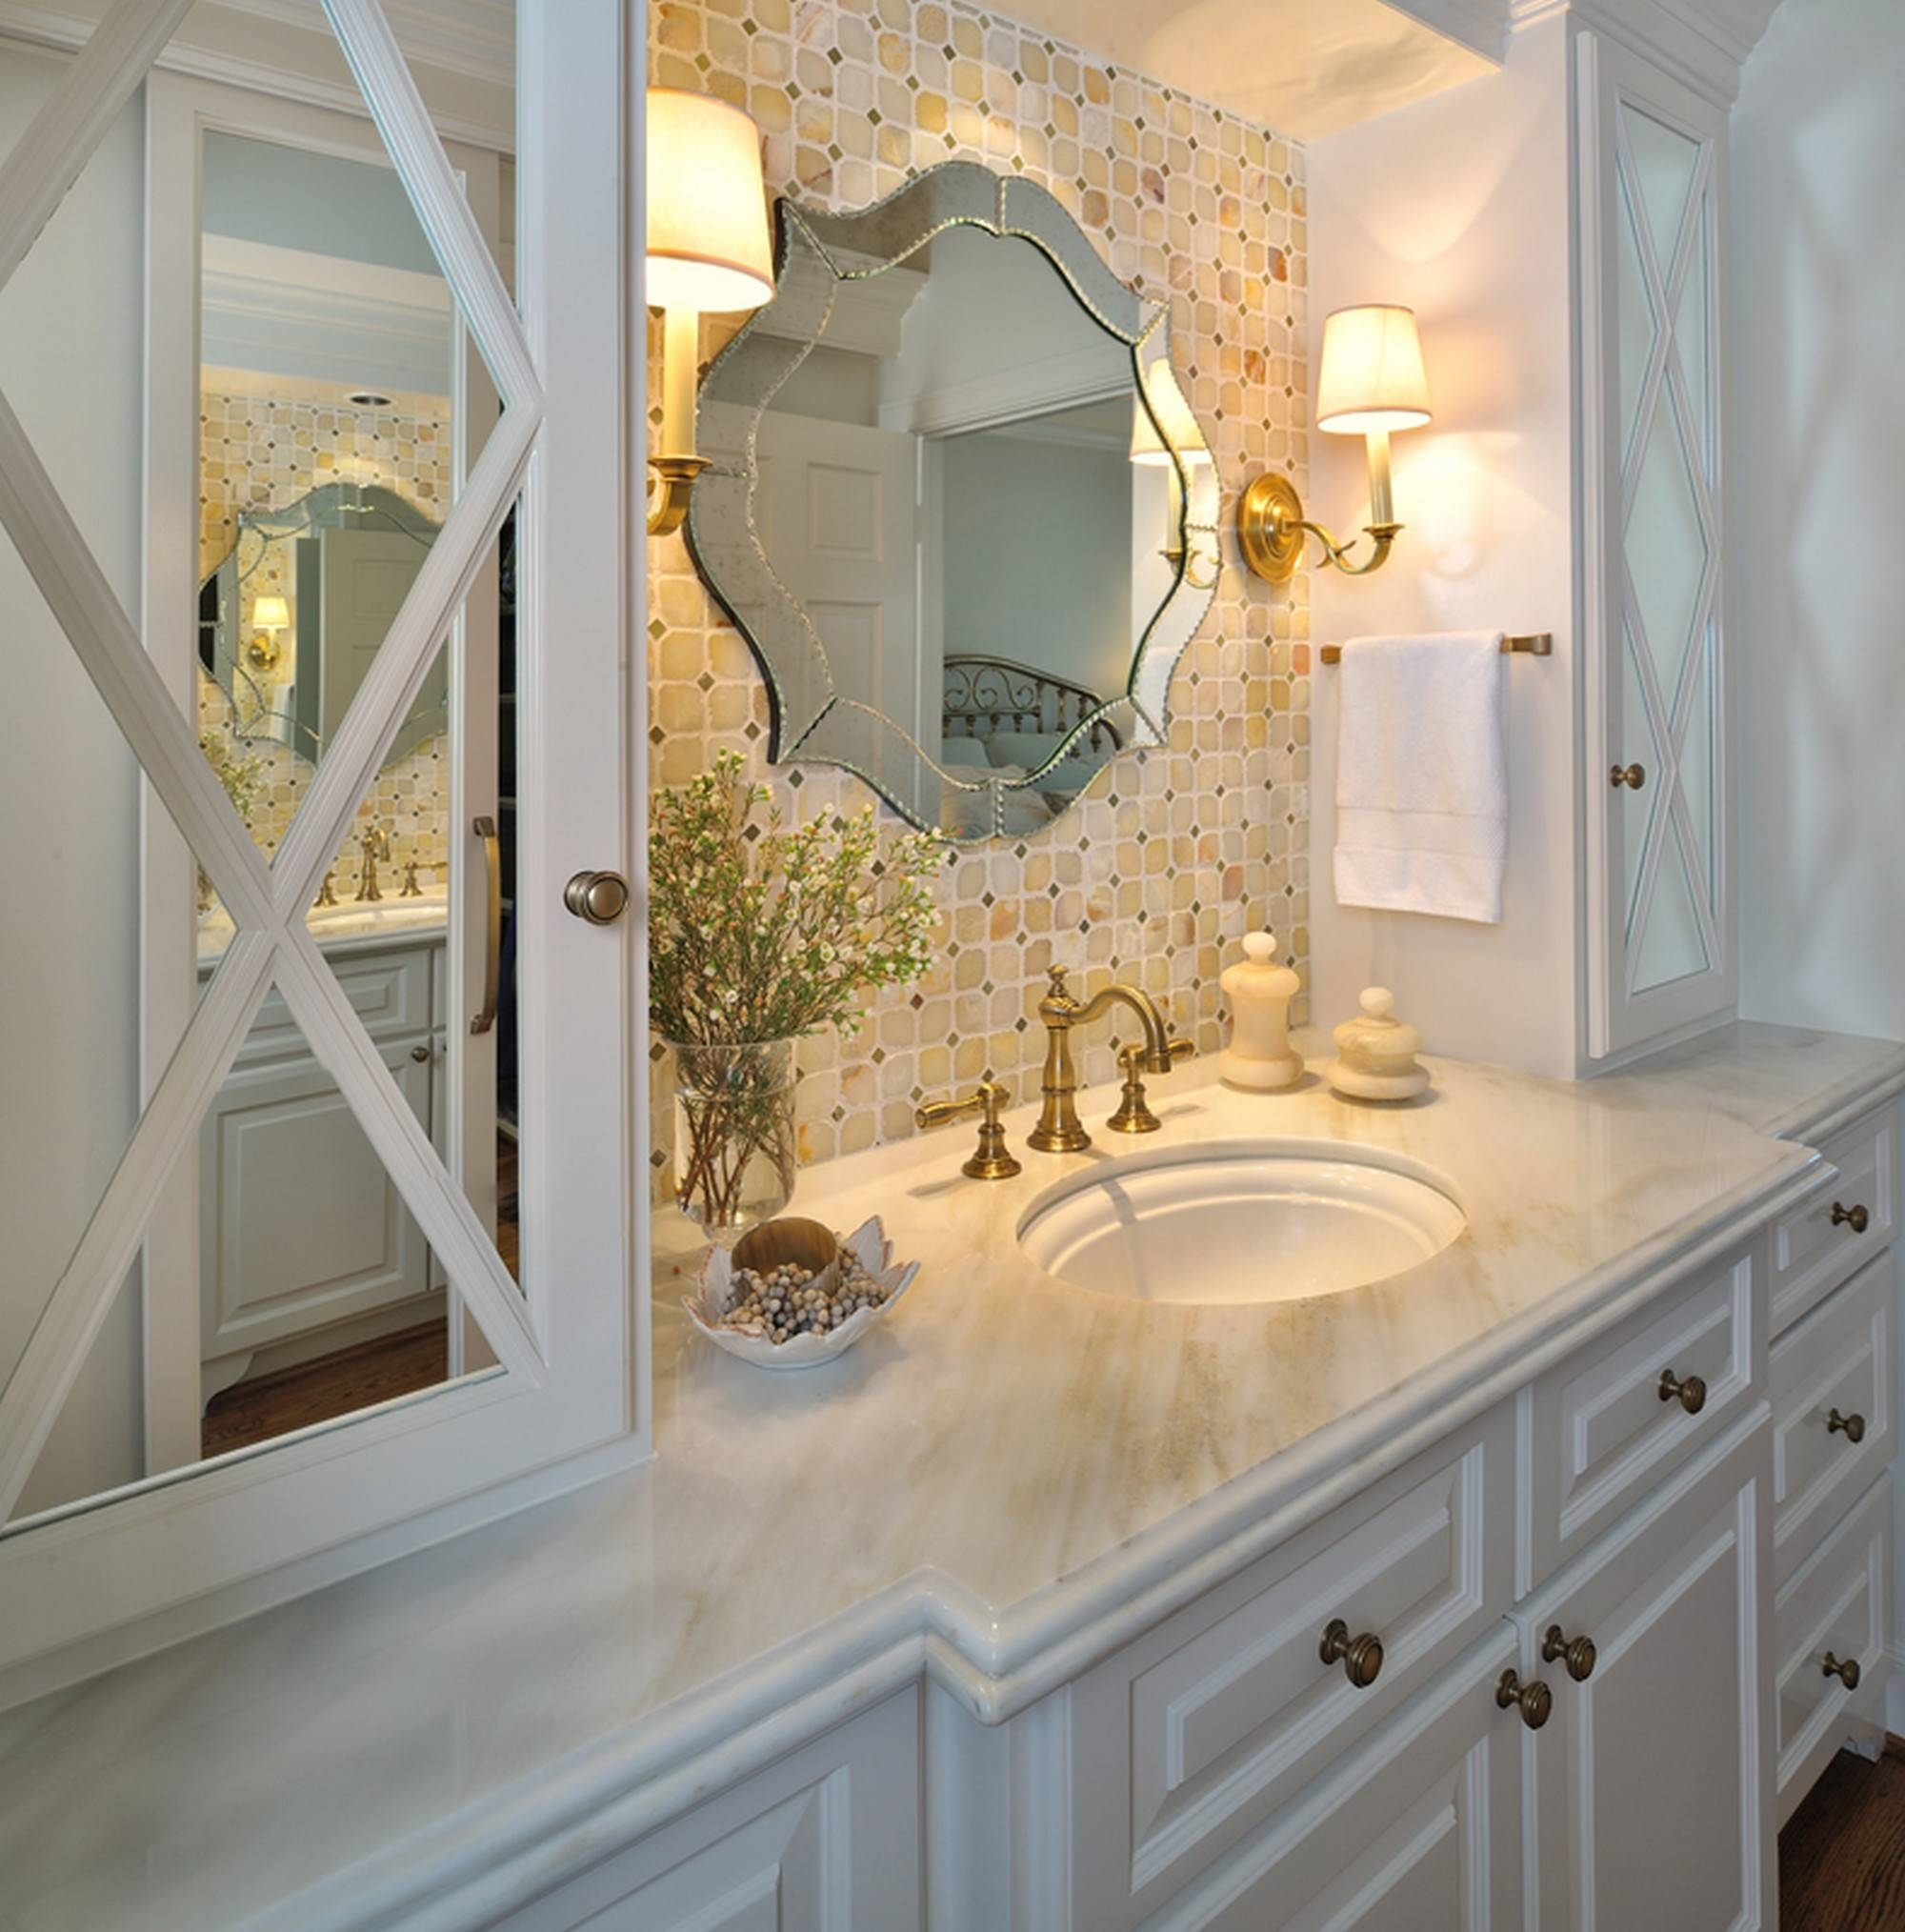 Bathroom Mirrors : Vintage Mirrors For Bathrooms Interior Design Intended For Vintage Mirrors For Bathrooms (View 10 of 15)